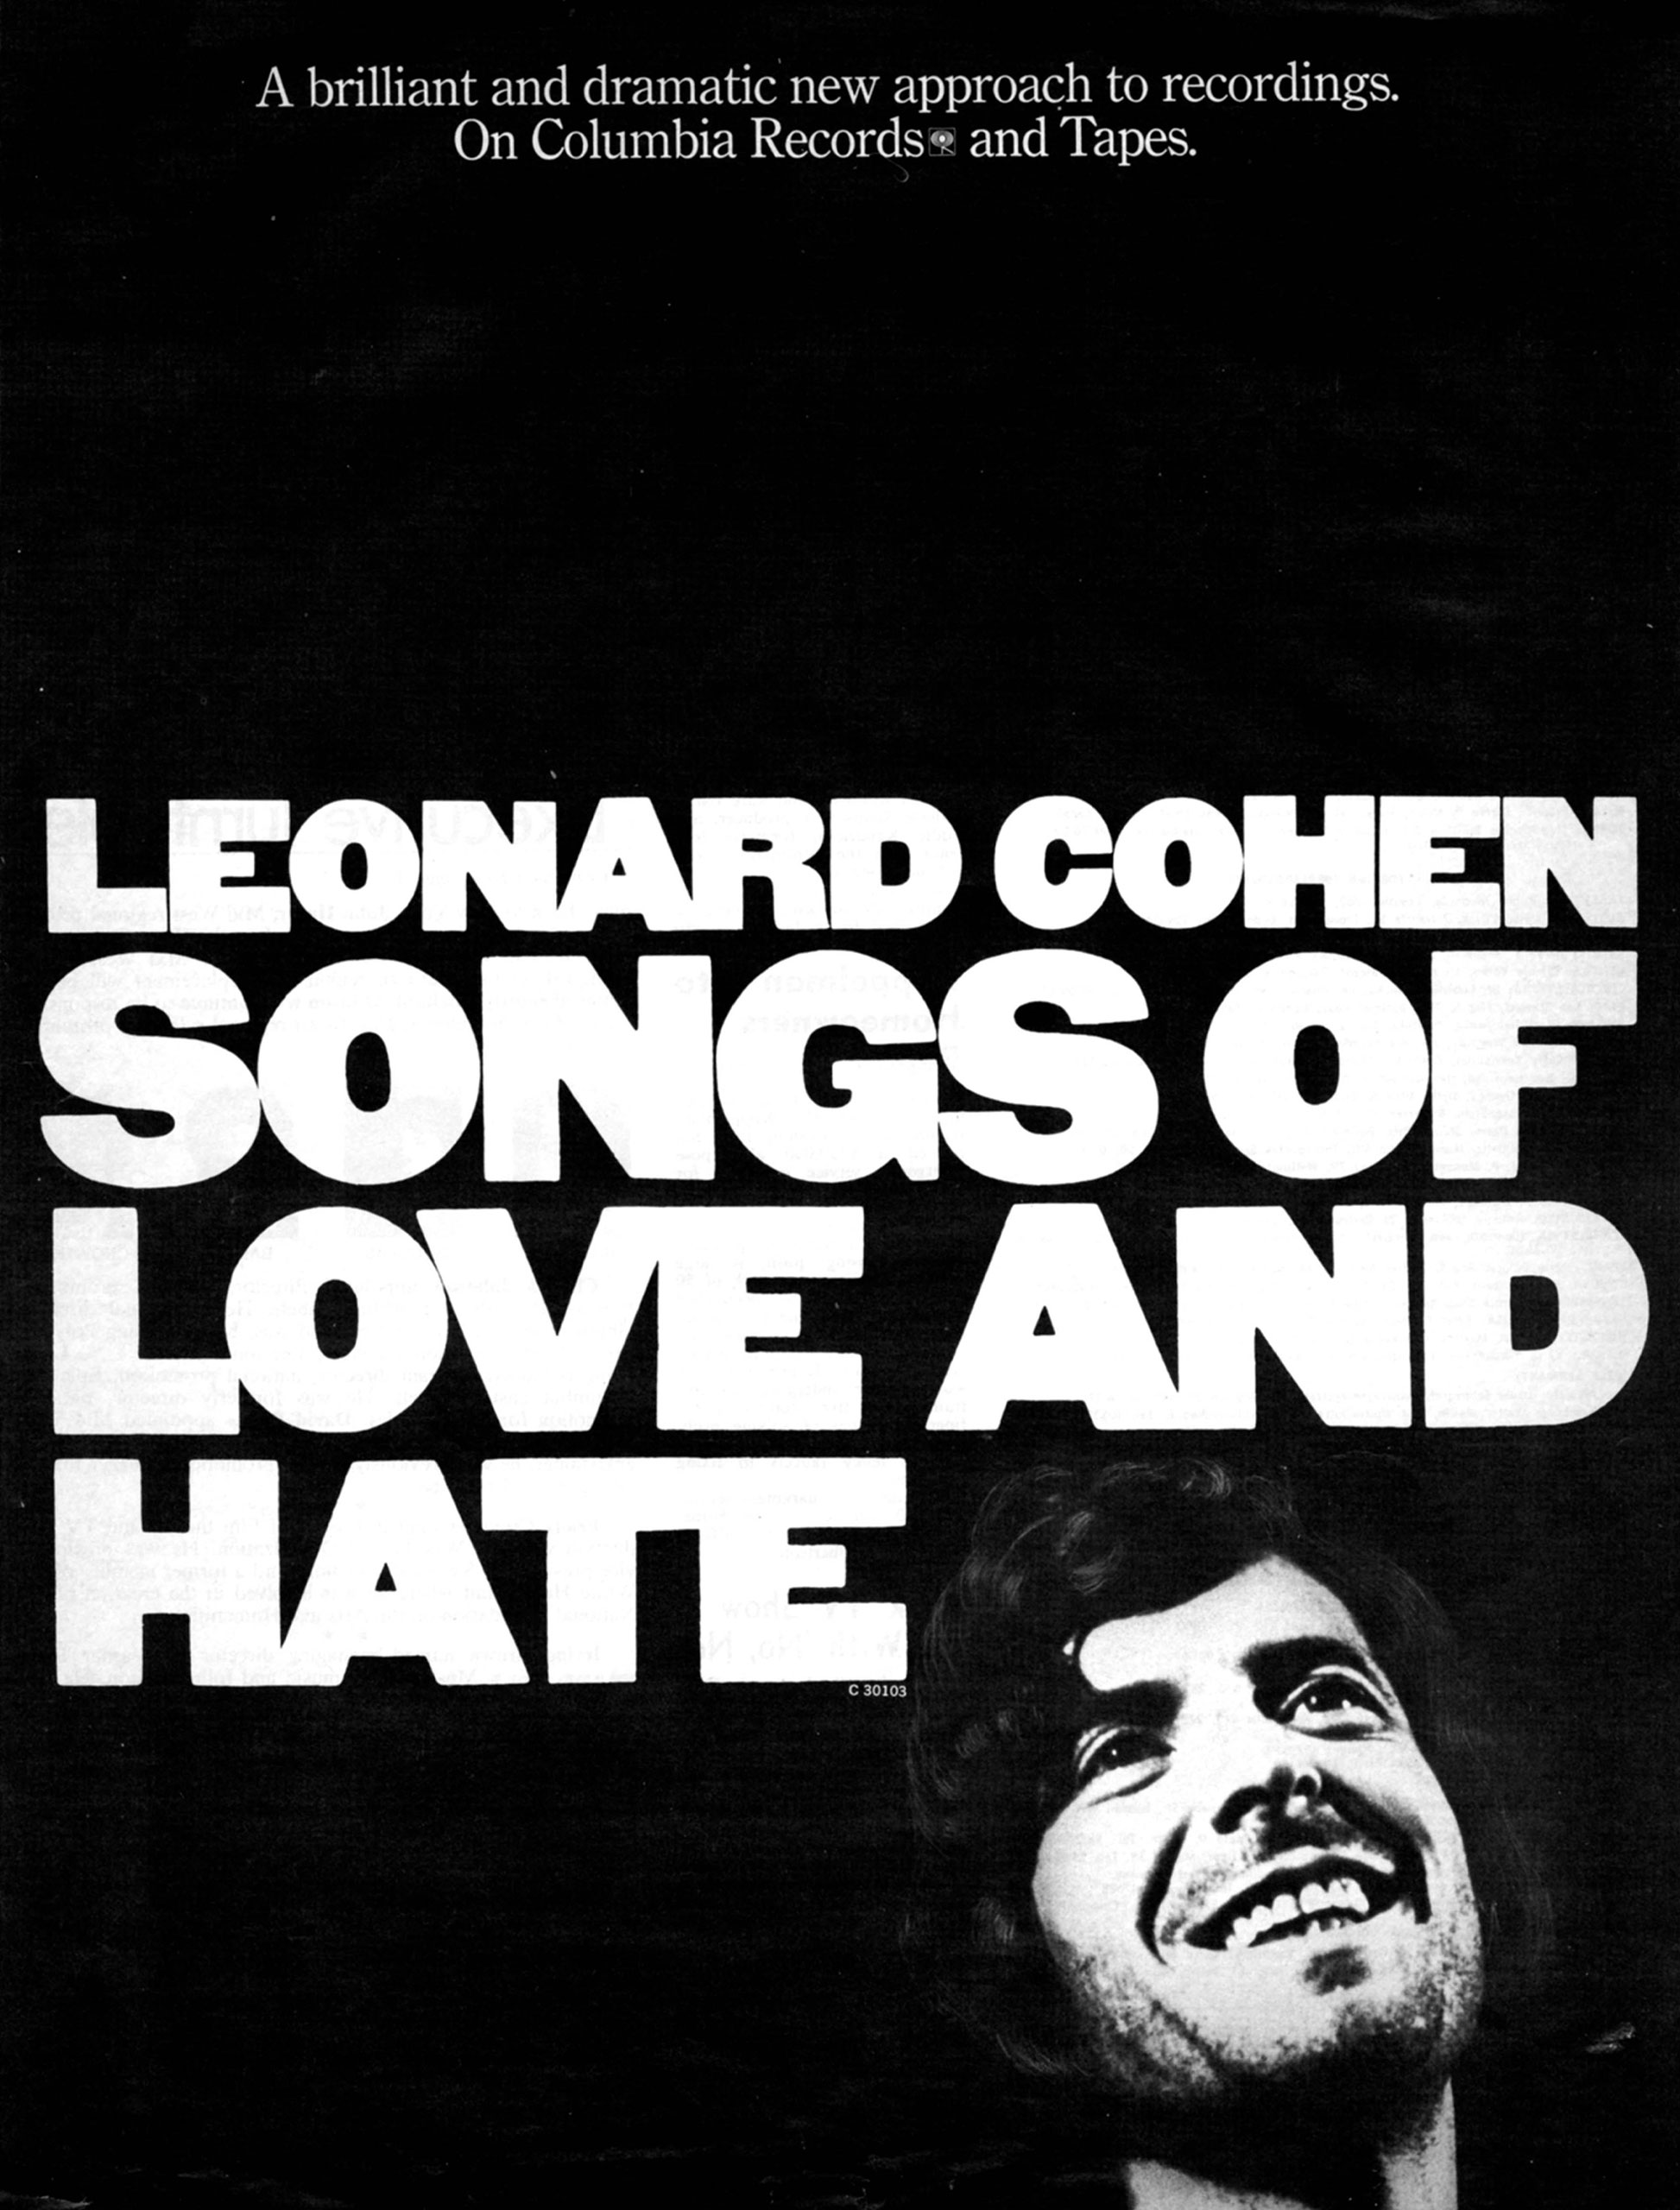 Advertisement for Leonard Cohen's album Songs of Love and Hate.